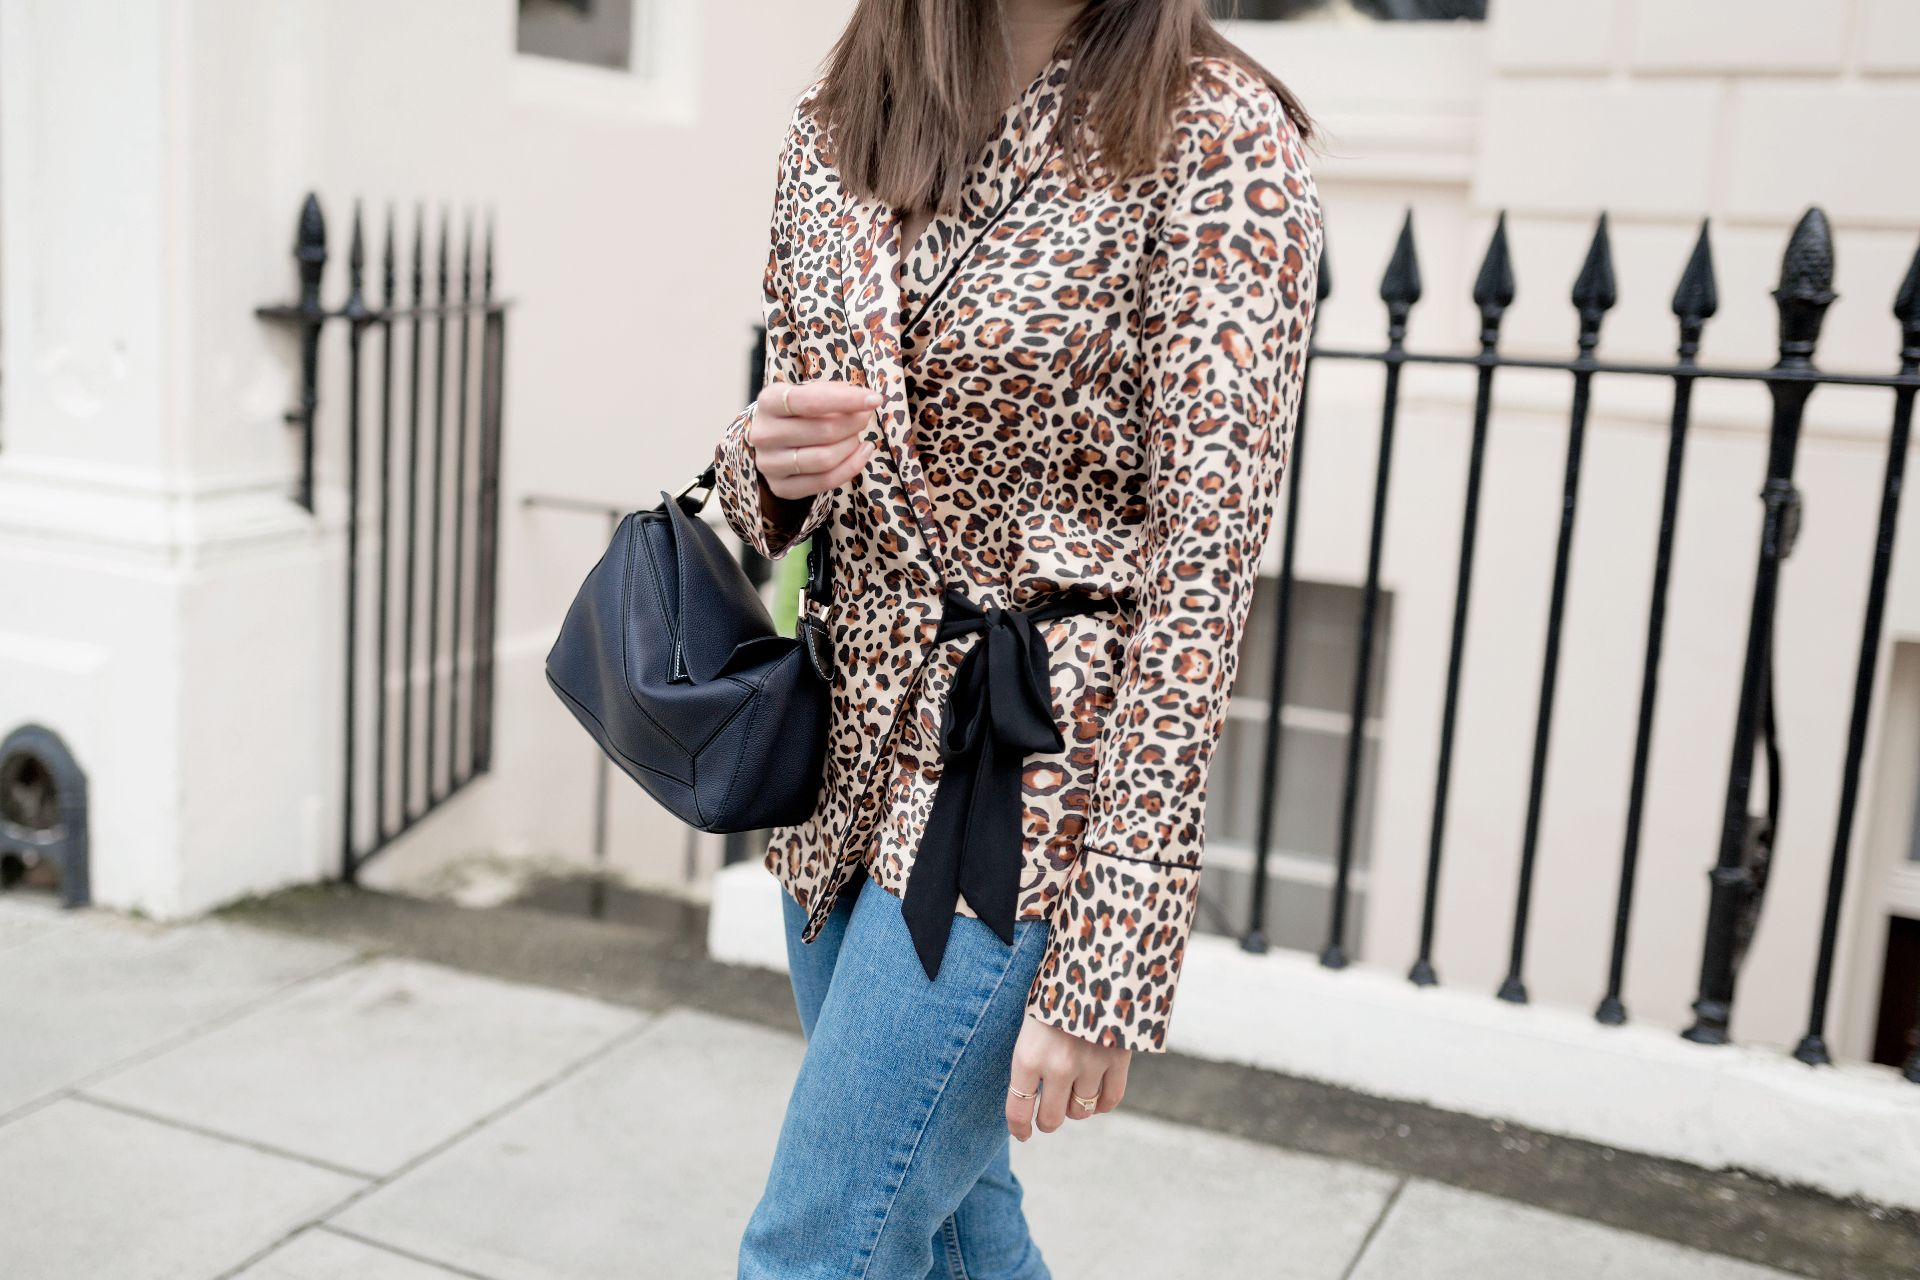 a55c315acad211 If you're new to animal print, then the easiest way to incorporate it into  your wardrobe is with a shirt, especially if you're a button-down and a  denim ...